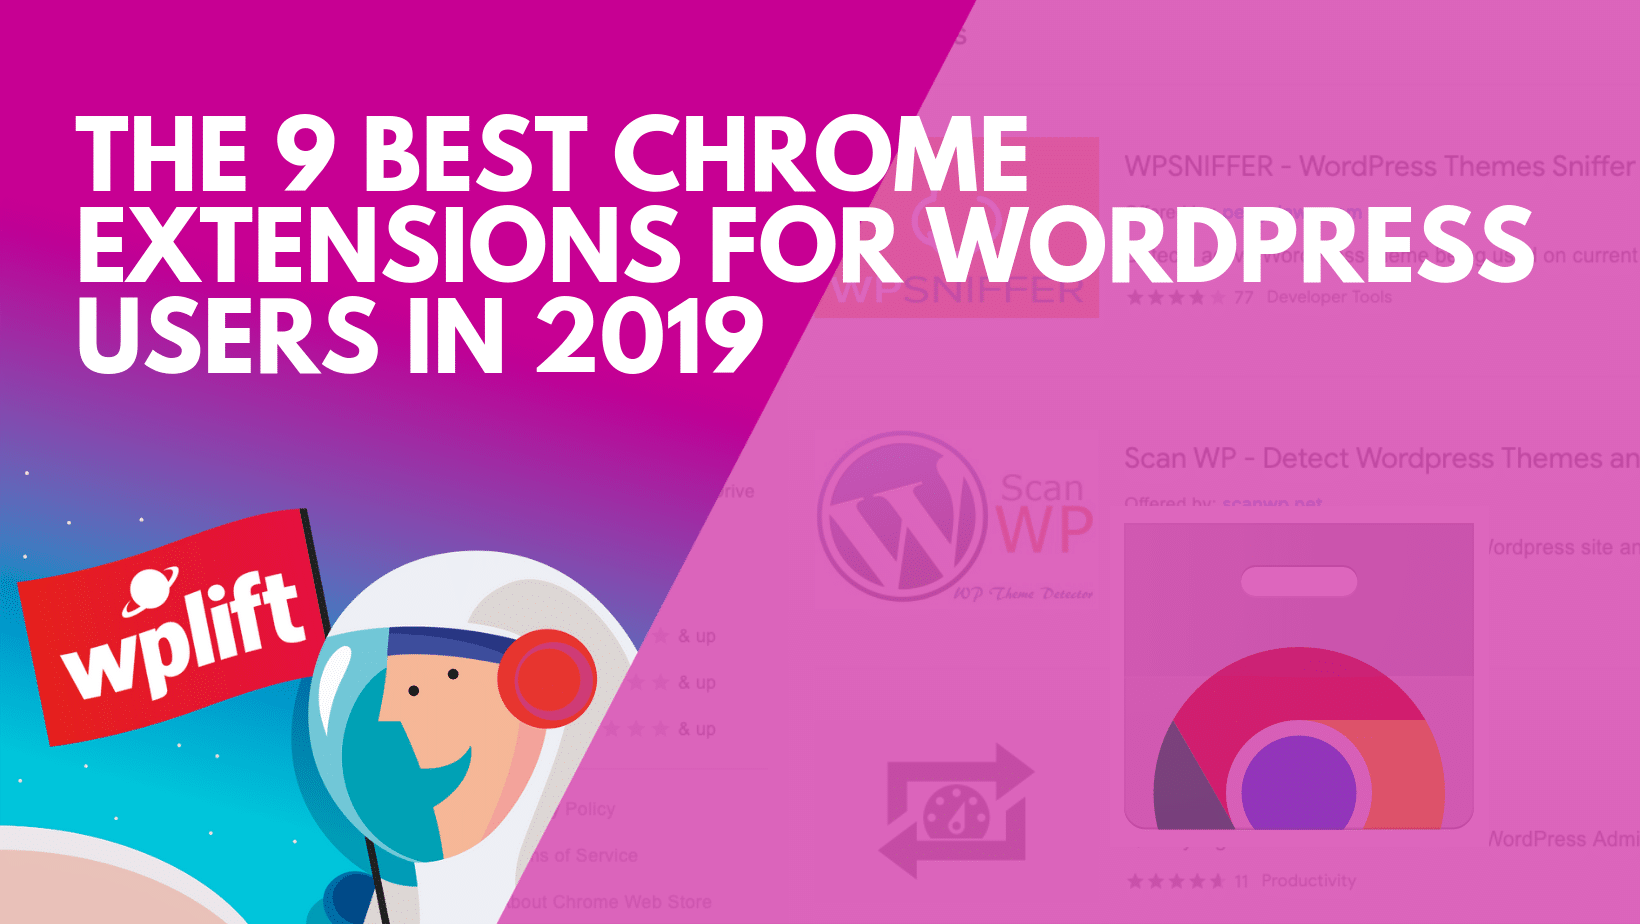 The 9 Best Chrome Extensions for WordPress Users in 2019